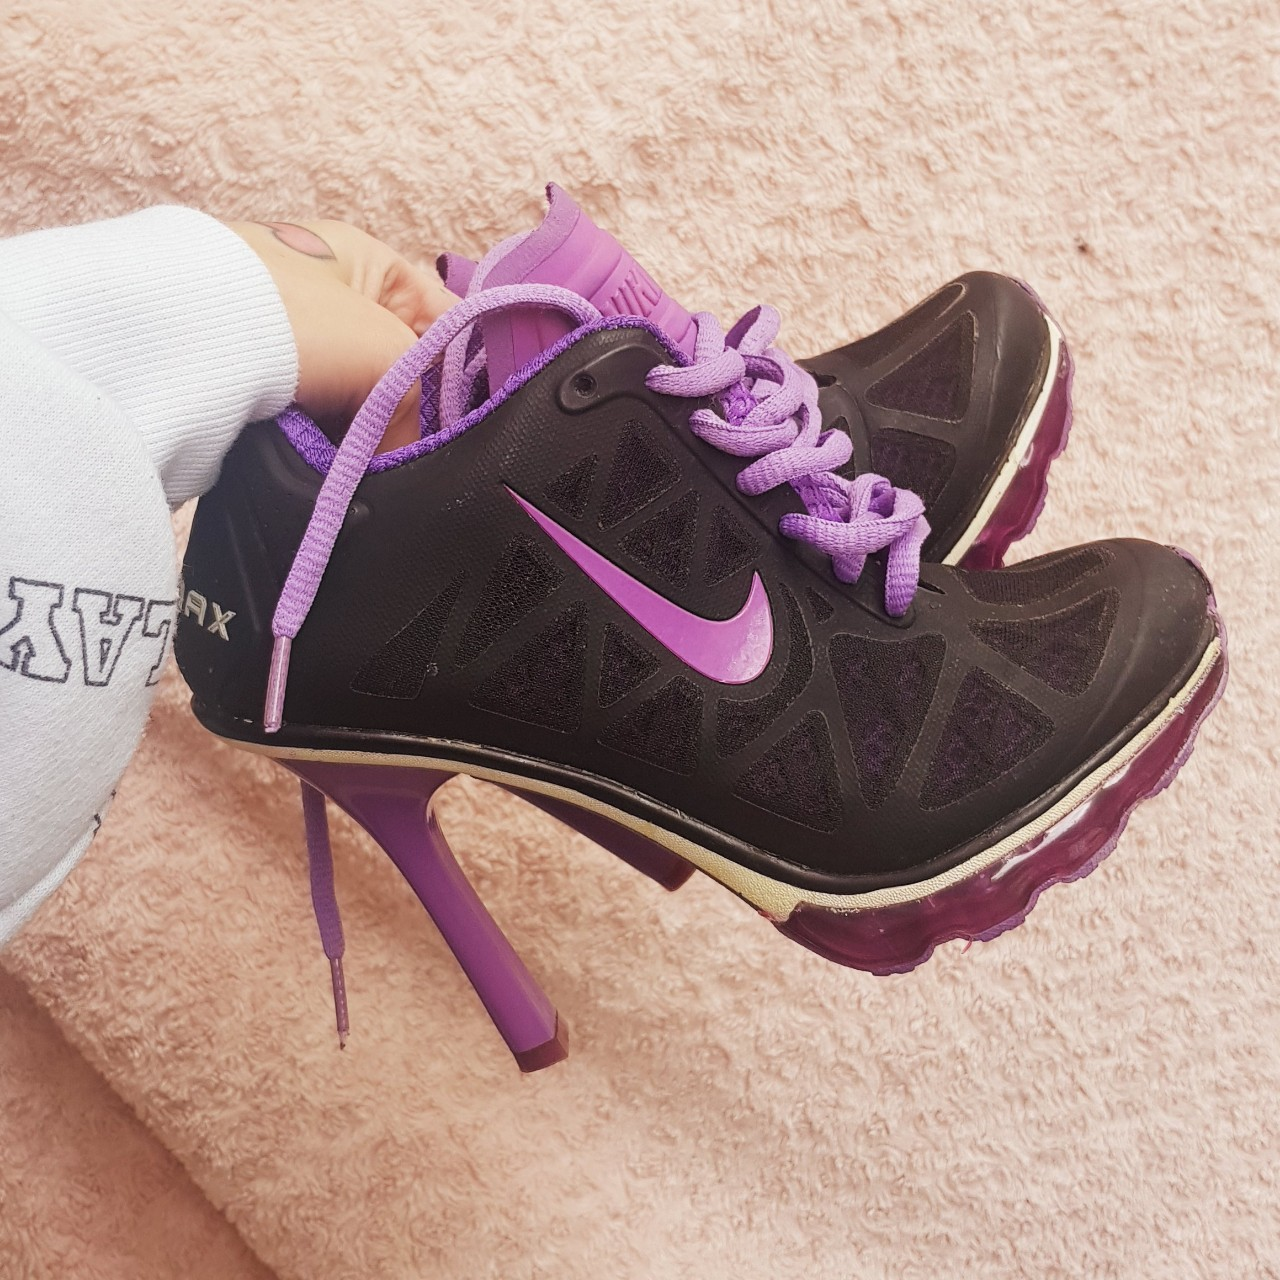 Nike air max high heels Are a size uk 4